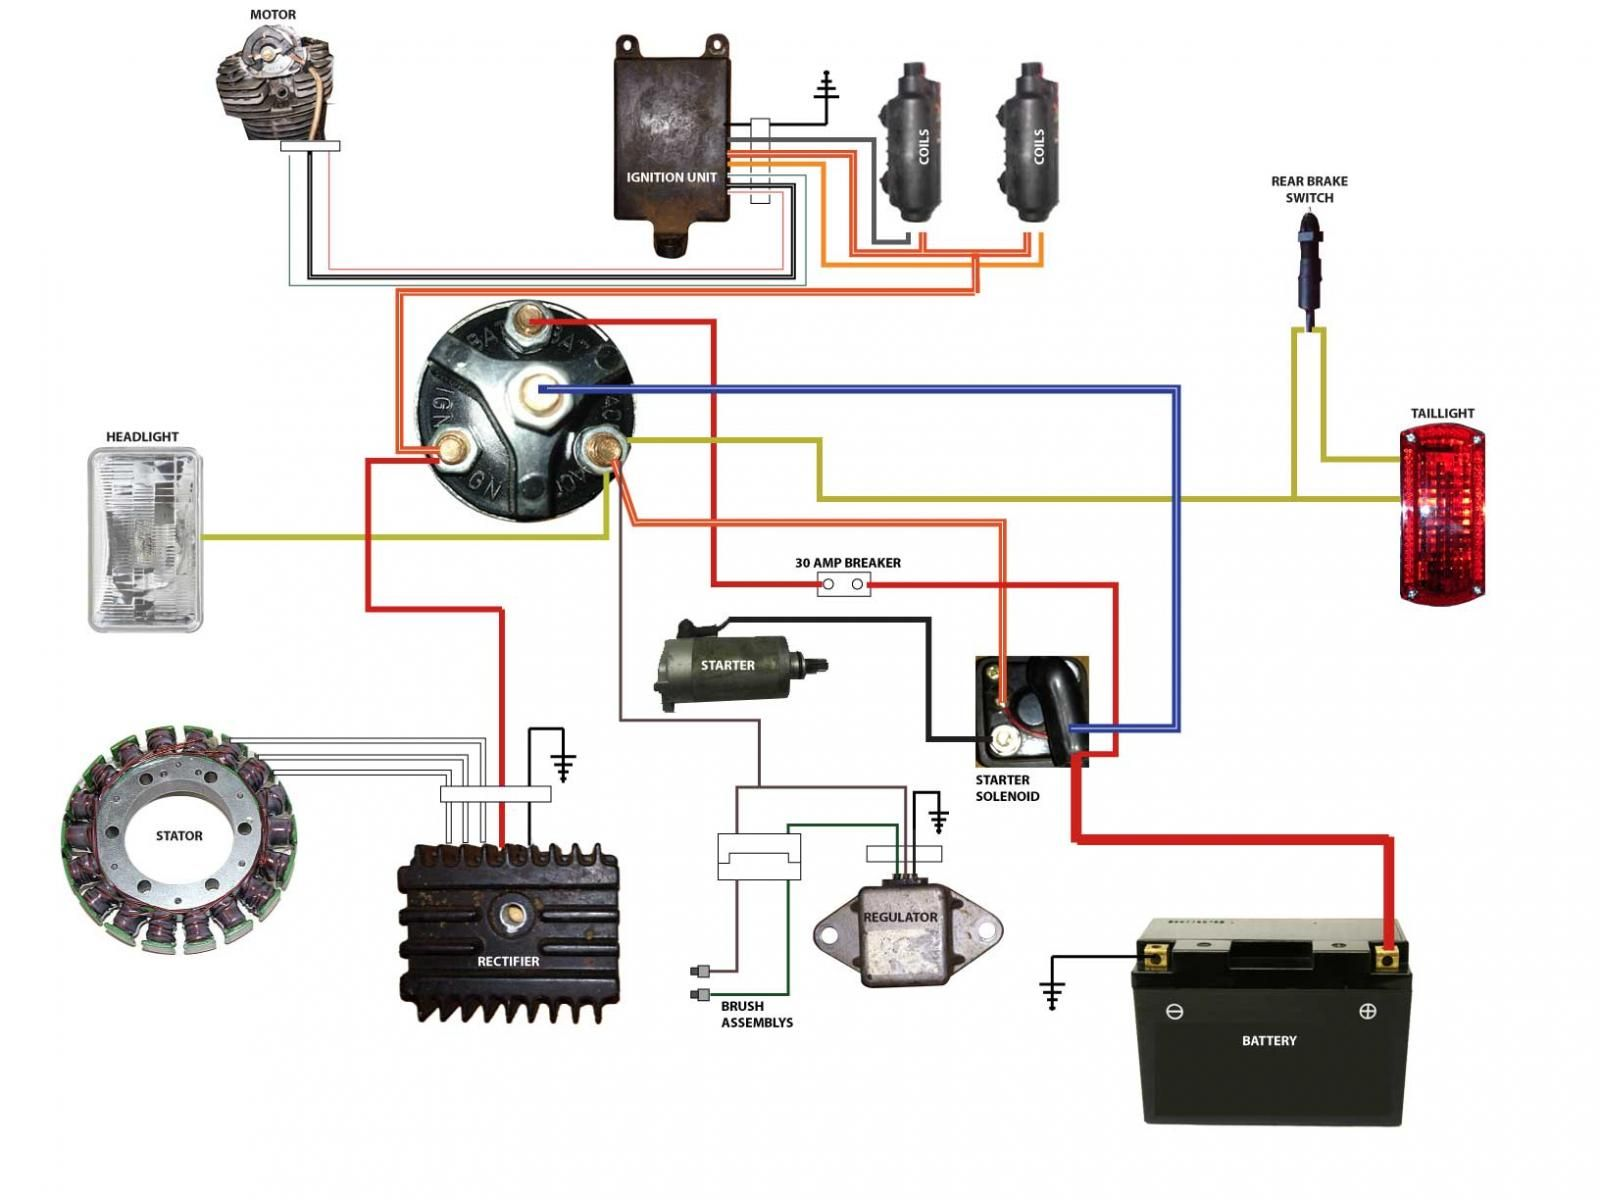 hight resolution of 1979 yamaha xs400 wiring diagram